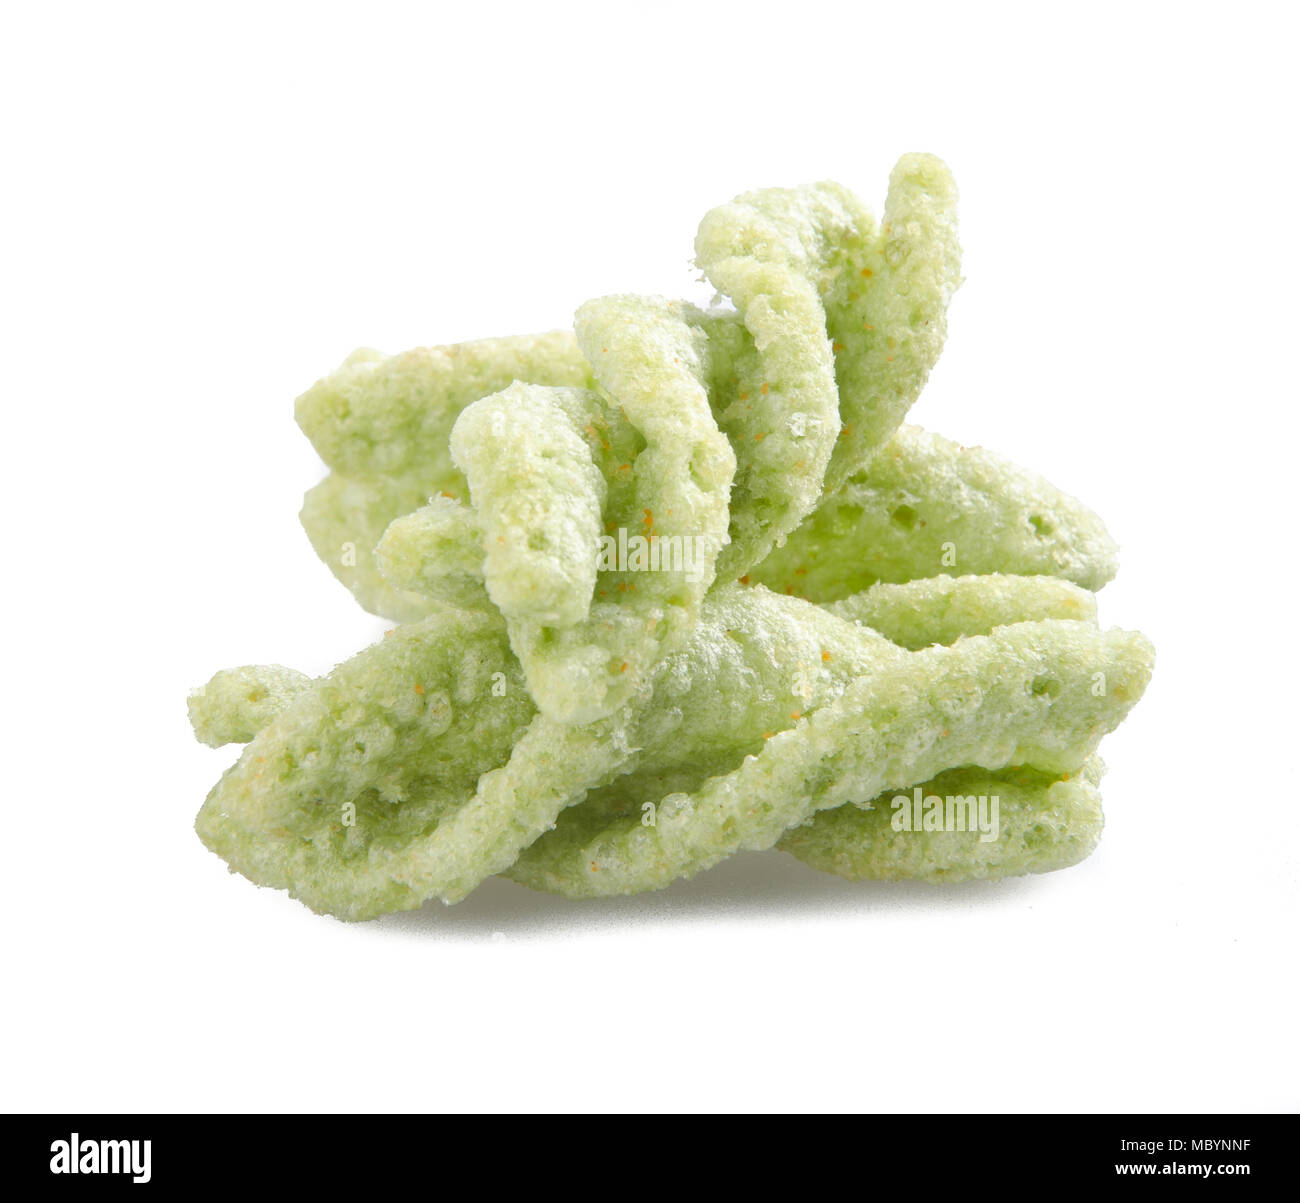 Junk food, green peas snack on a background - Stock Image